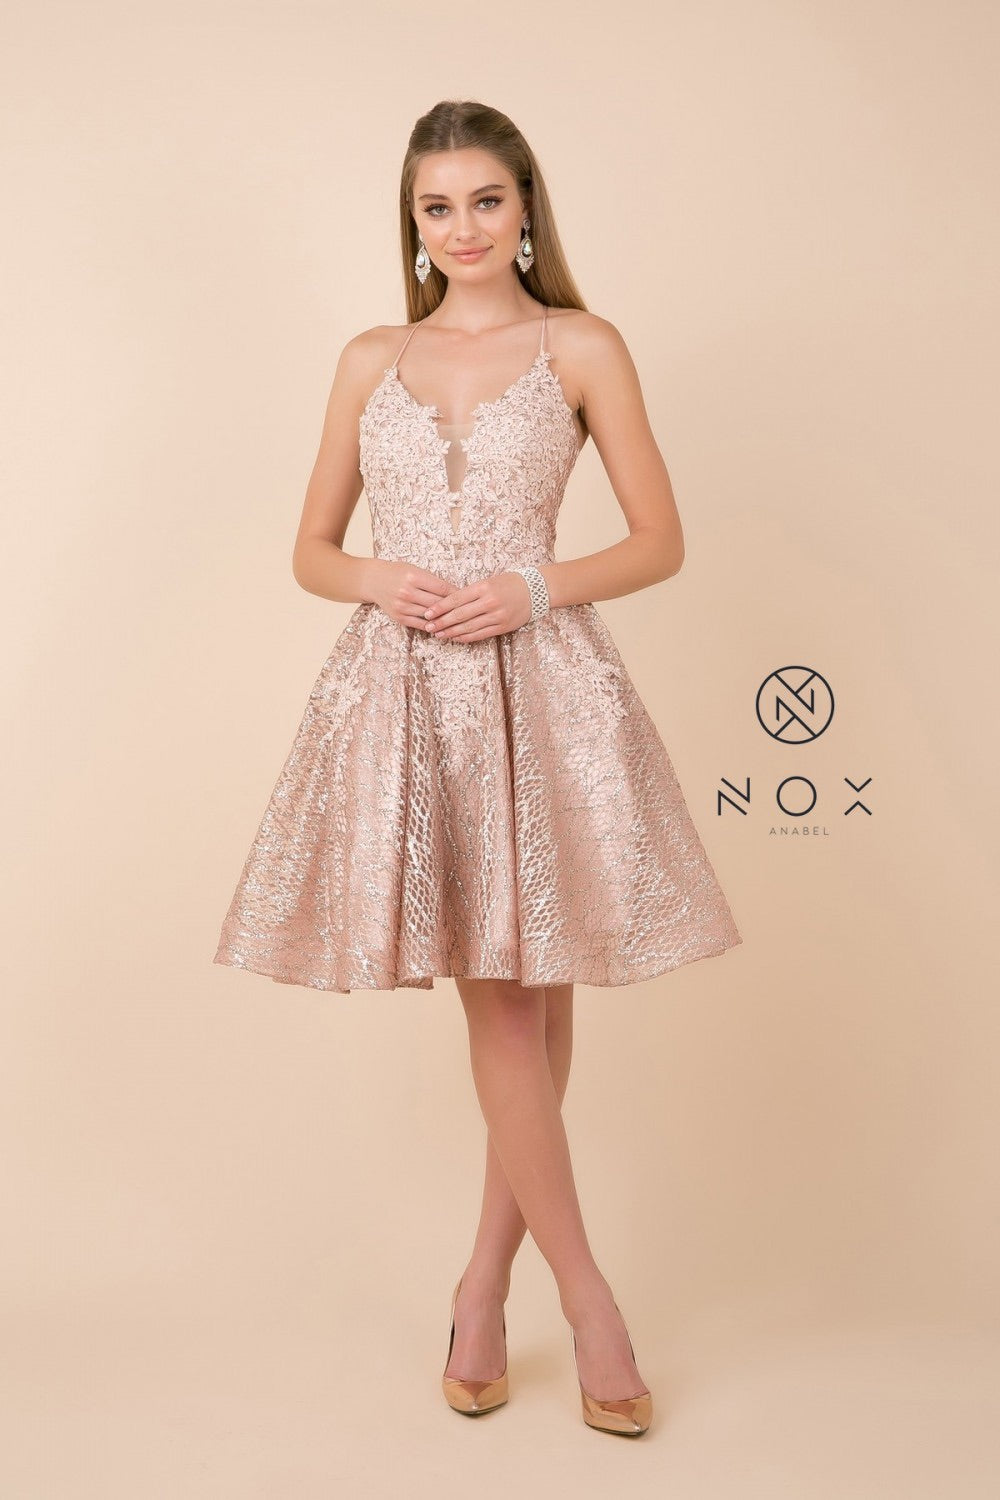 Nox Anabel R682 Embellished Party Dress